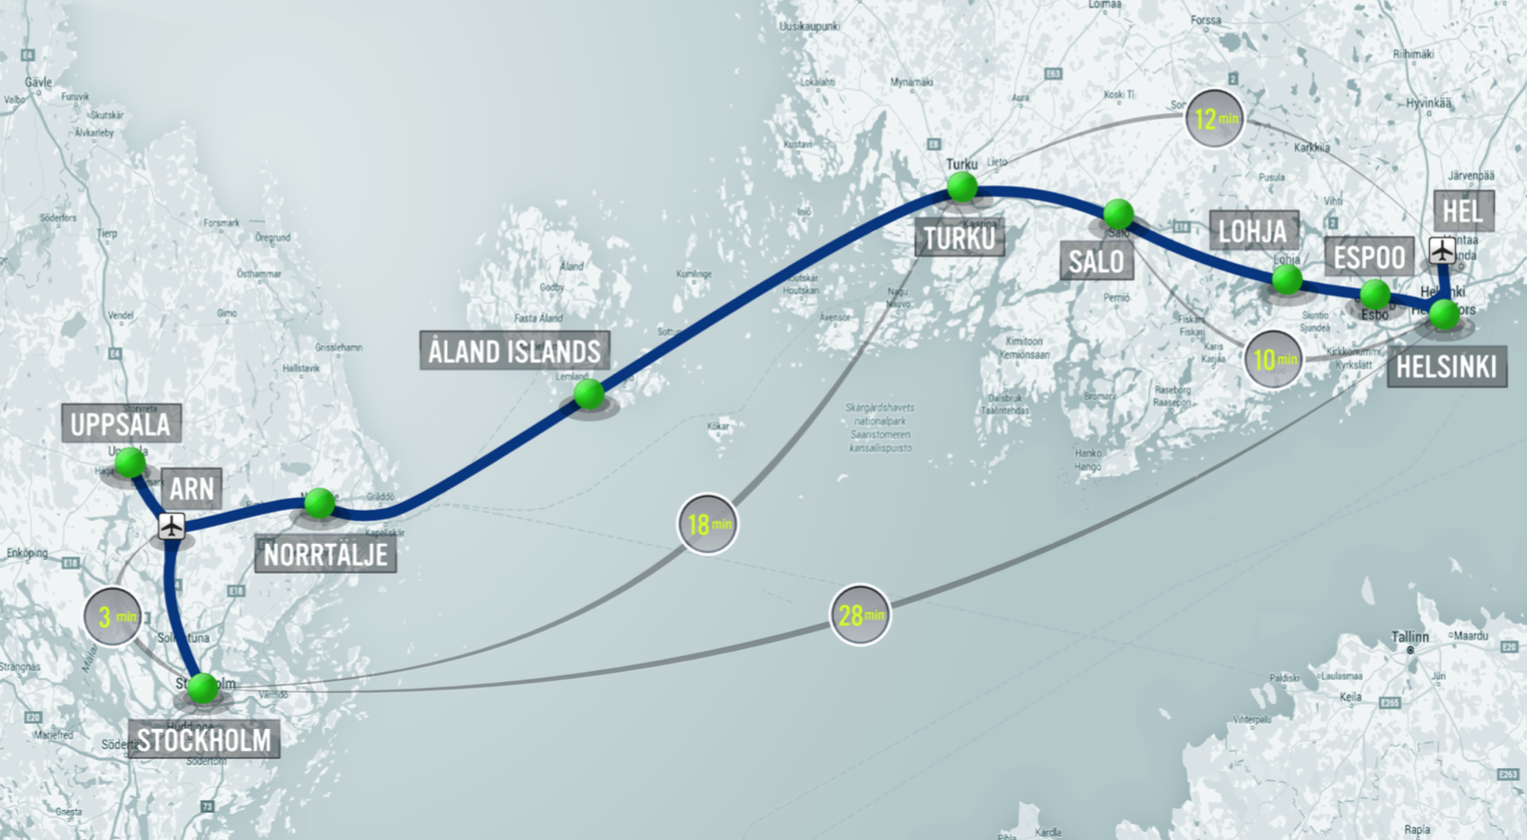 Hyperloop Connecting Helsinki And Stockholm Turns 480km Trip Into 28 Minute Ride